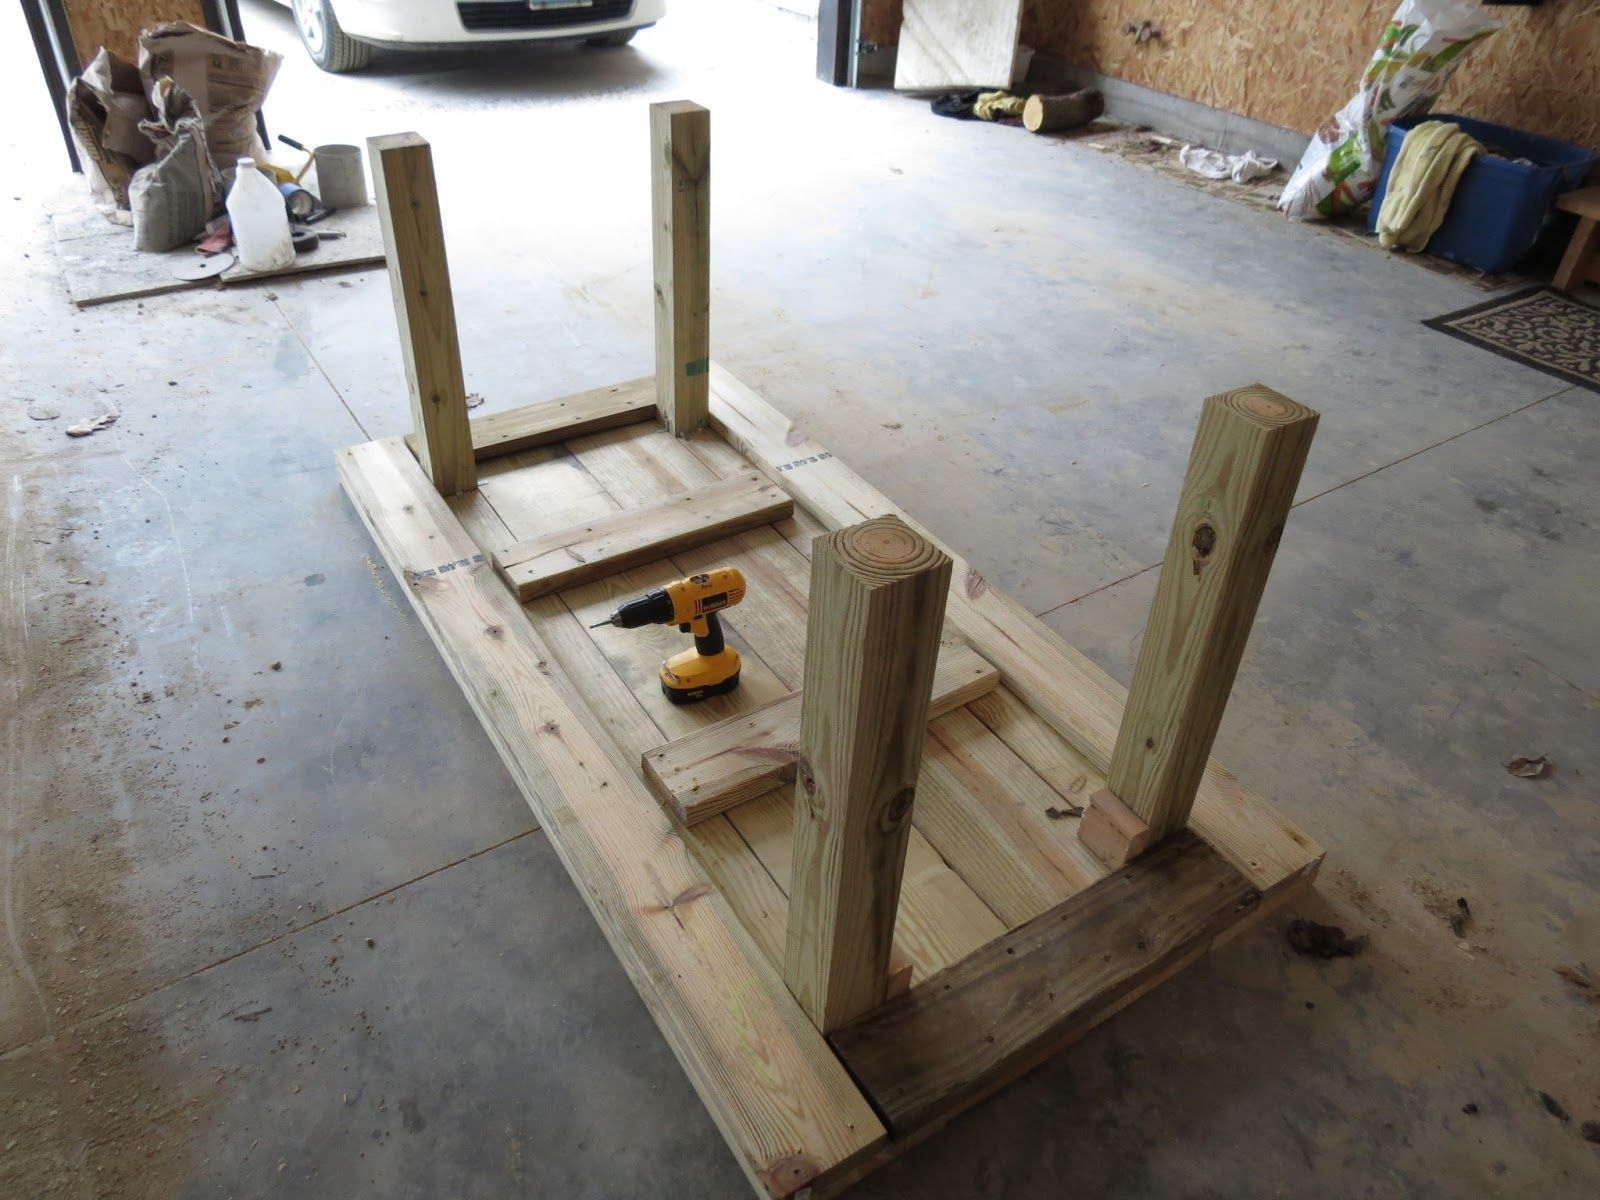 DIY 2X4 Patio Furniture on the image for additional